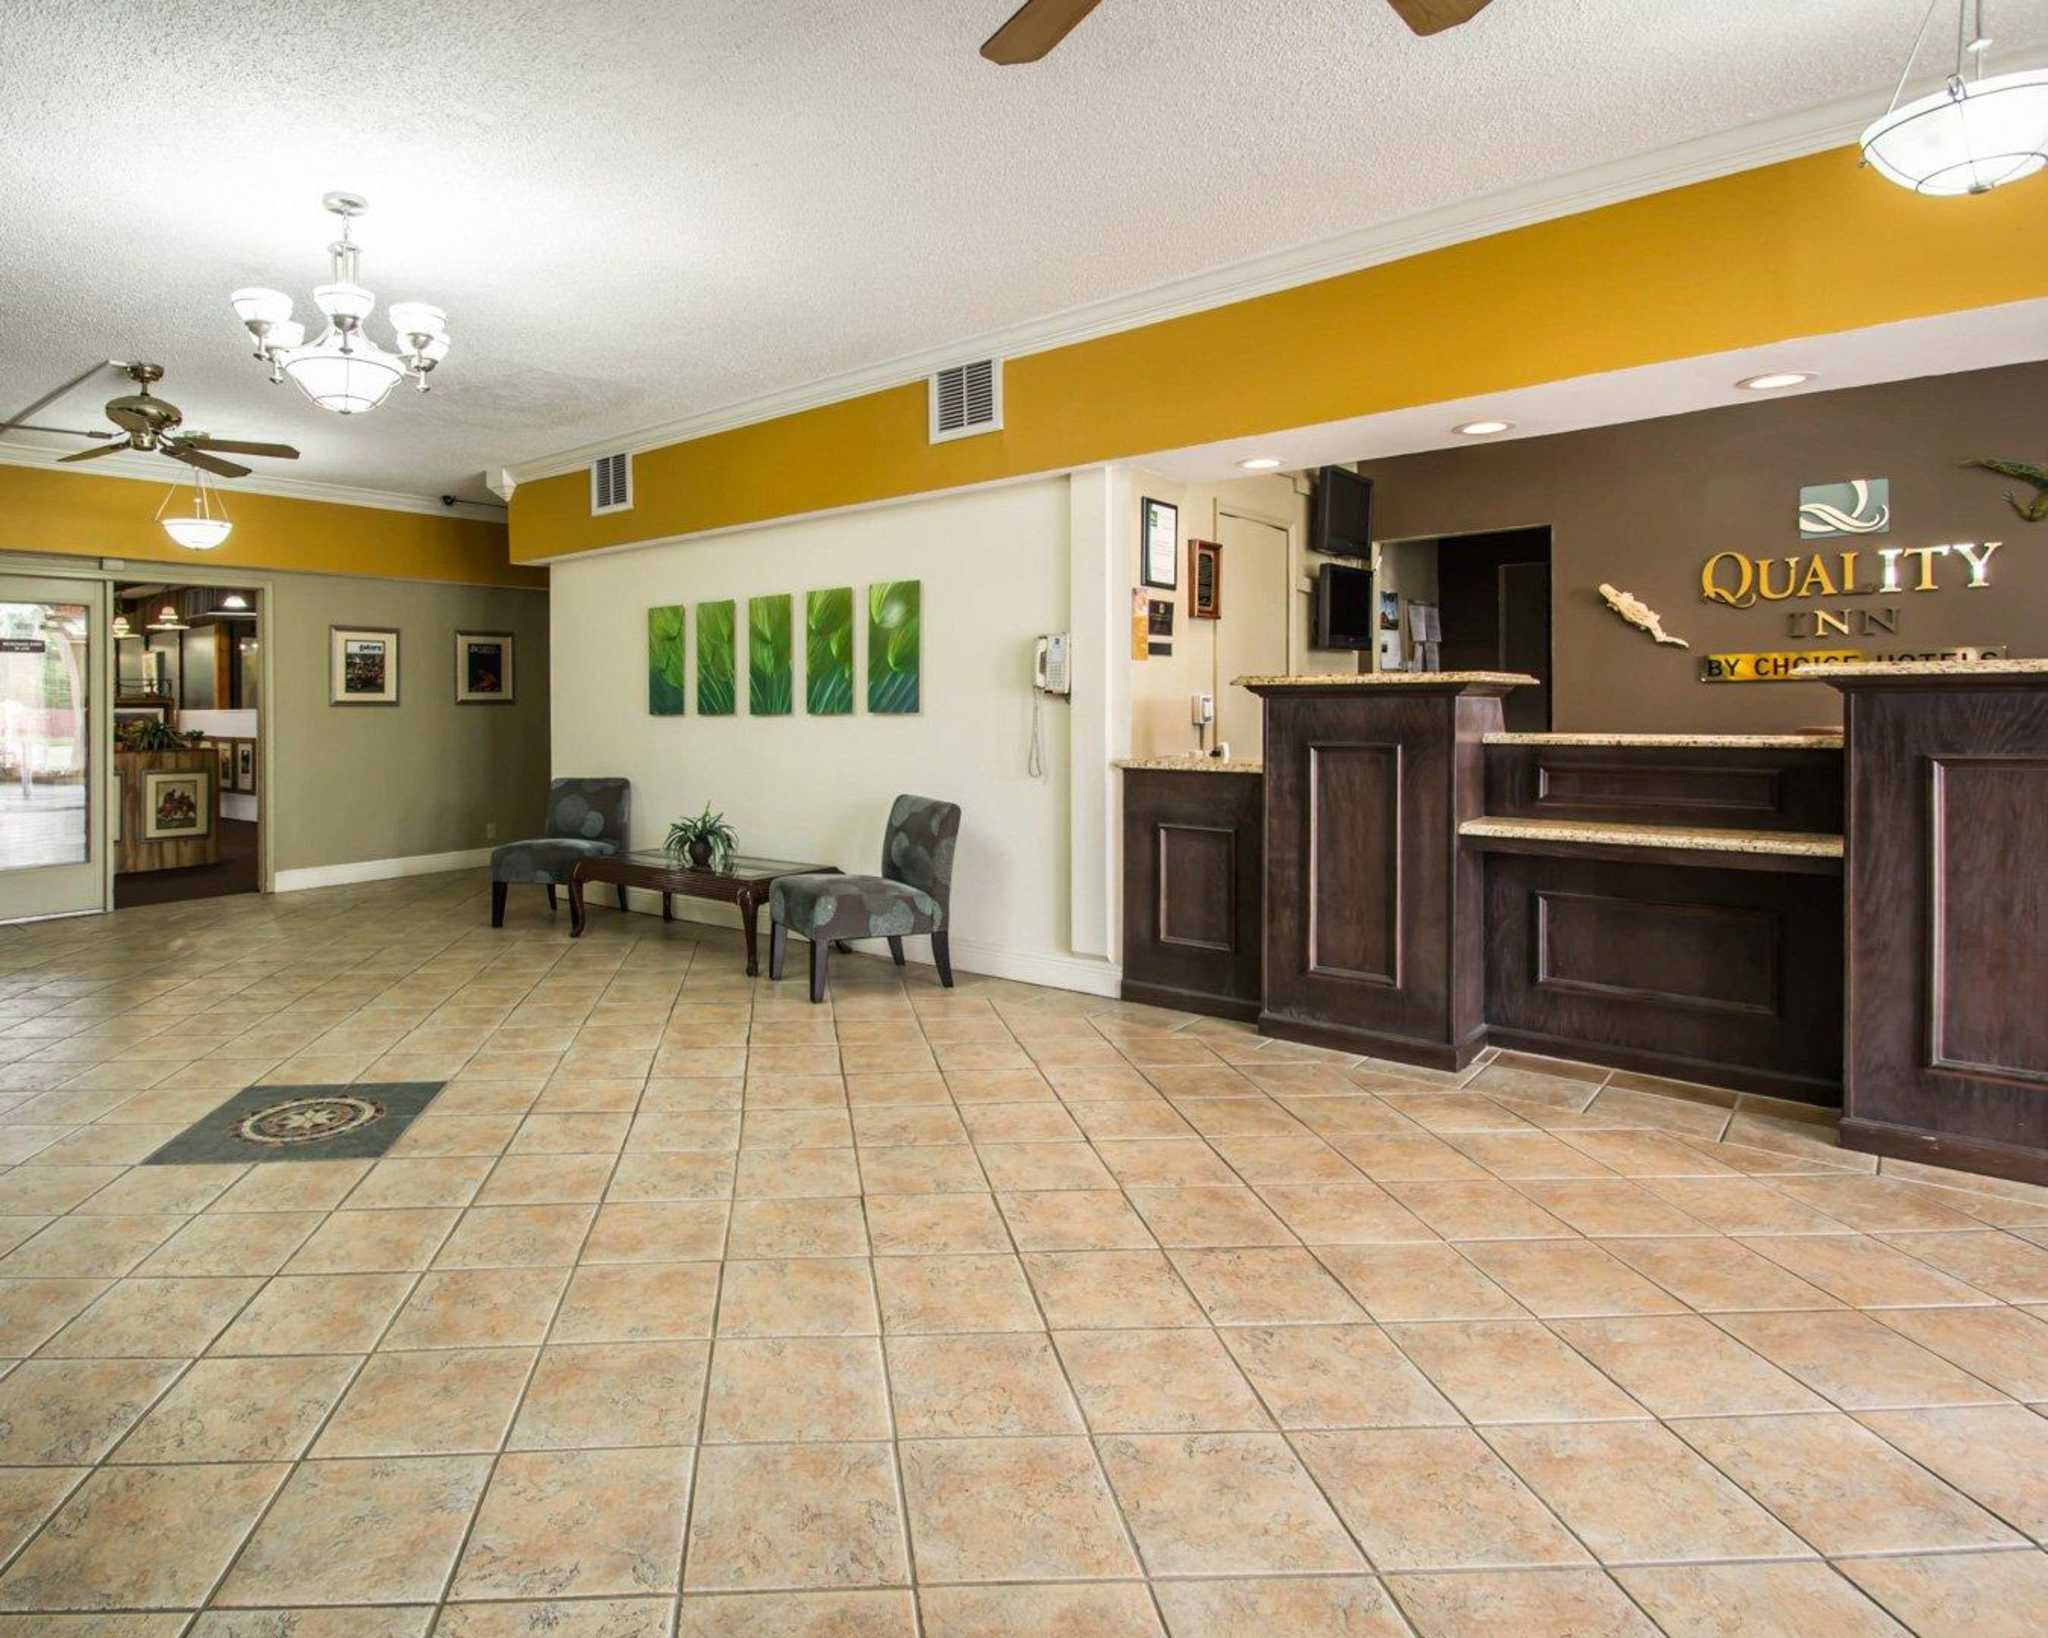 Quality Inn I-75 at Exit 399 image 23